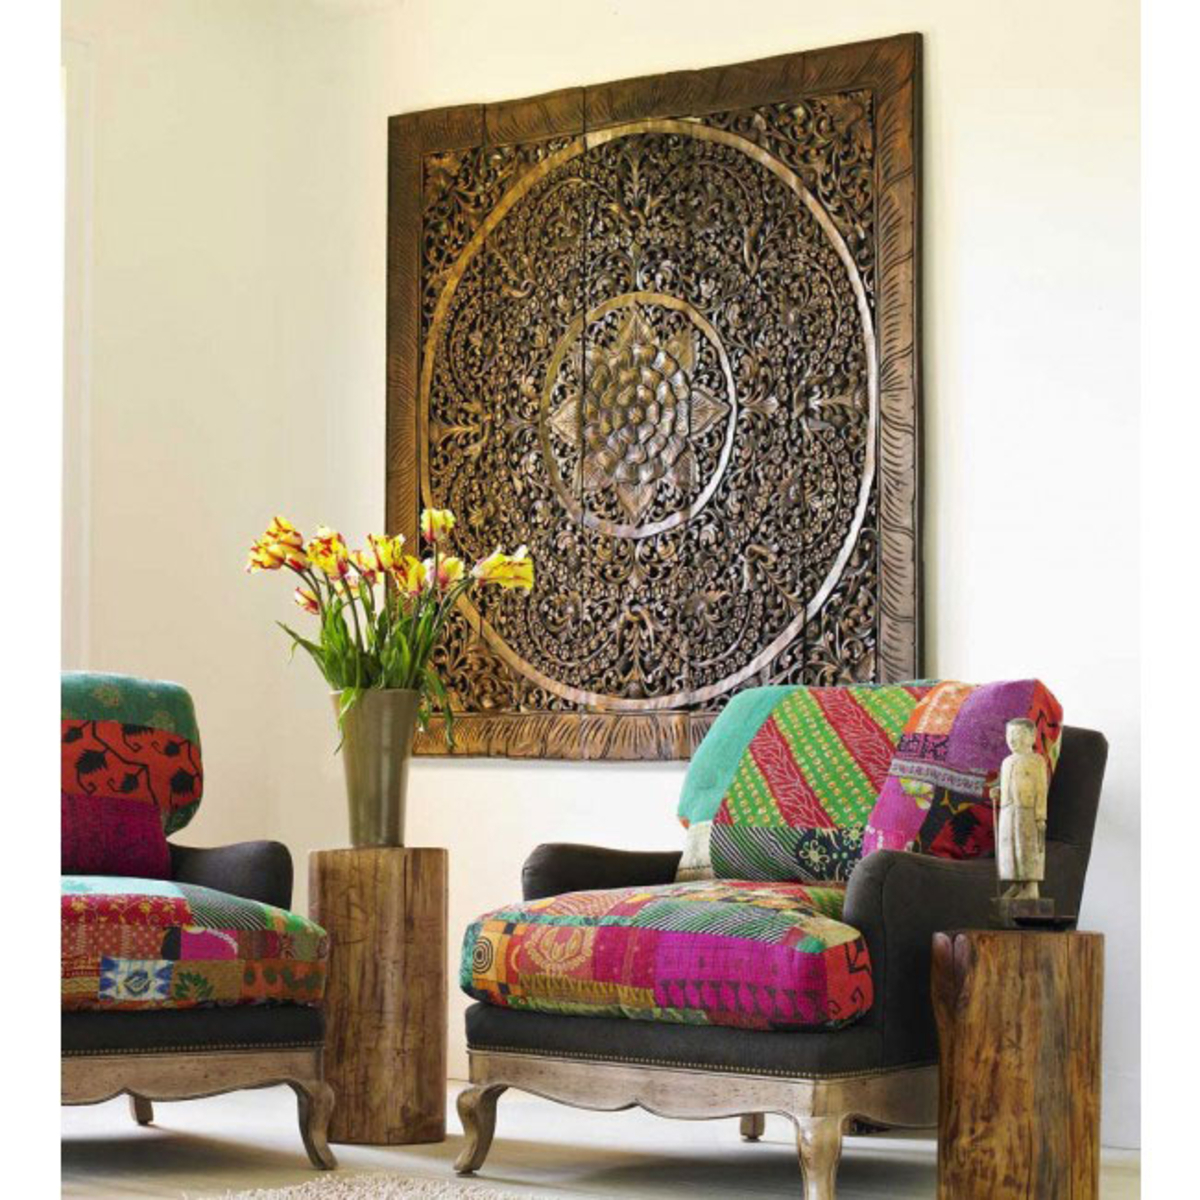 Teak Lotus Handcarved Wall Panels With Regard To Panel Wood Wall Decor Sets (set Of 2) (View 6 of 30)